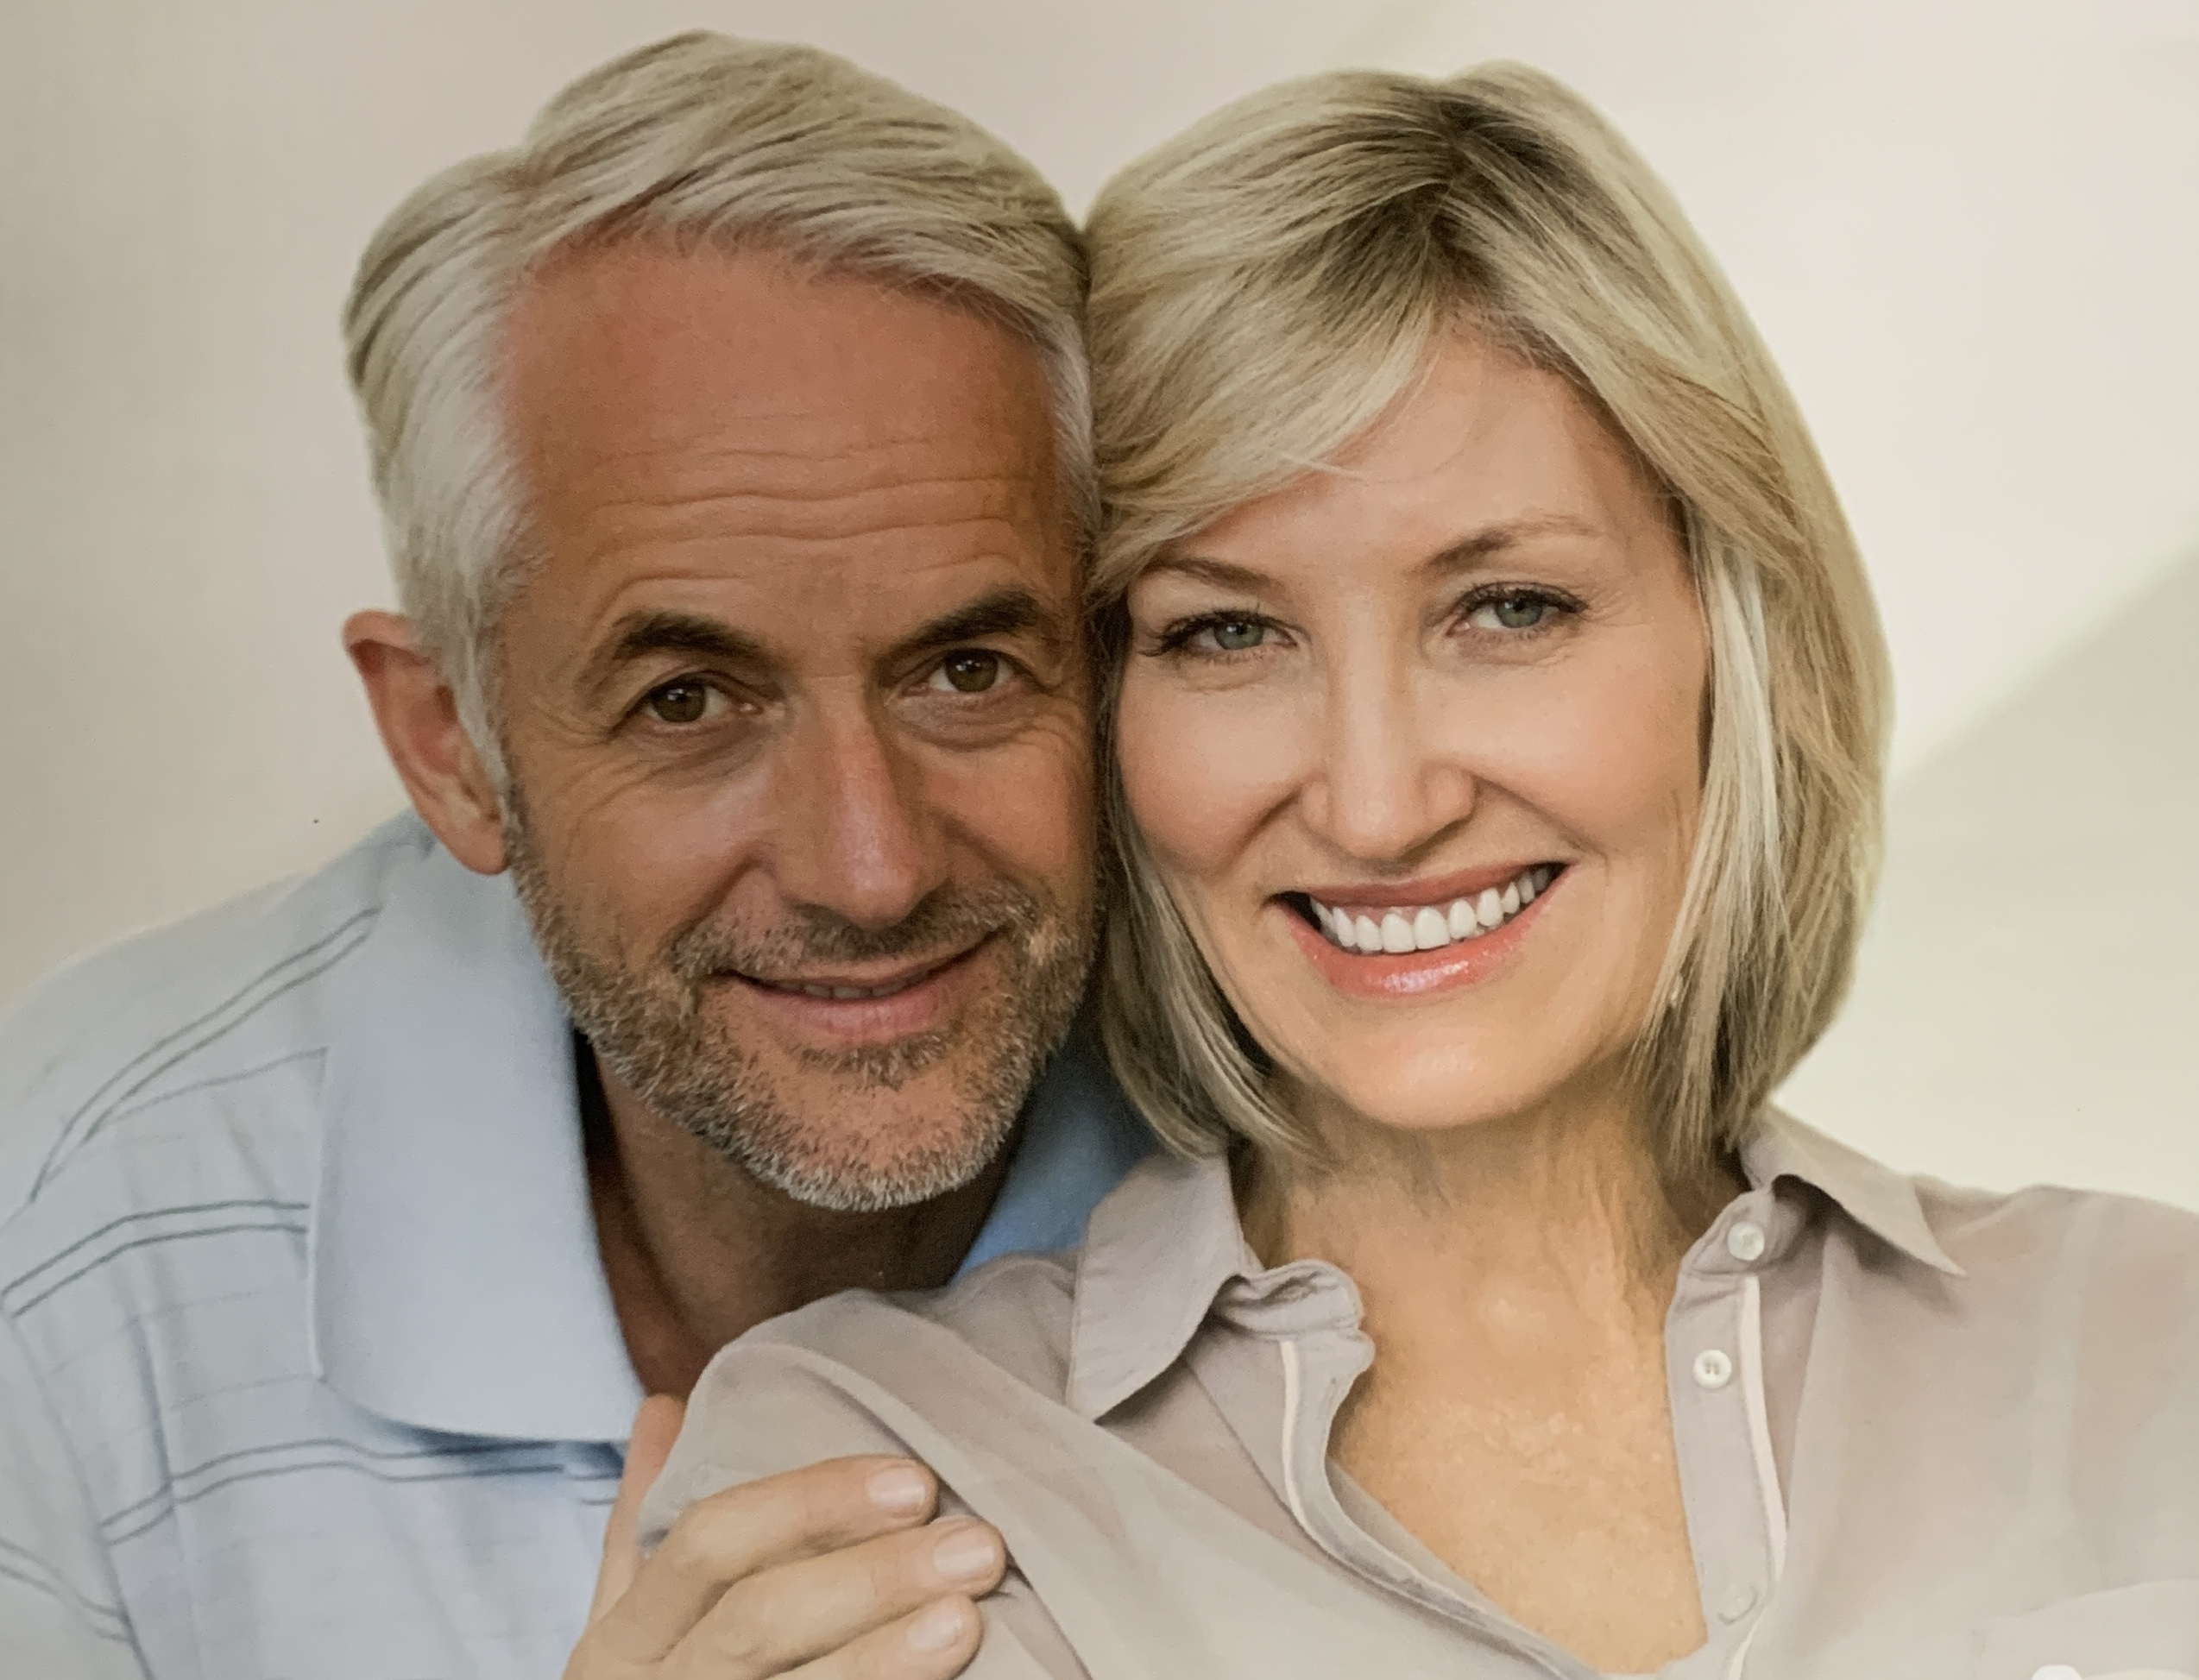 Dentures | Cosmetic Dentistry | Dentist in Reston, VA